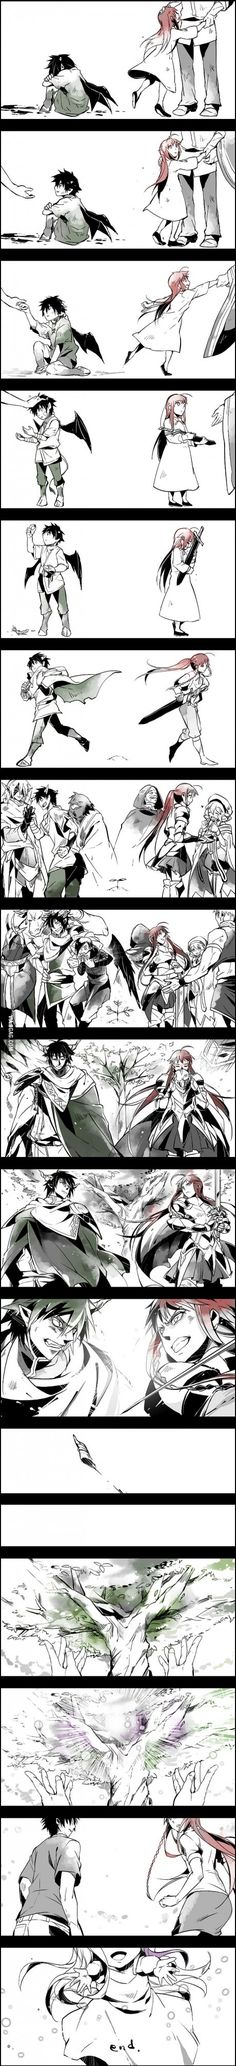 Hataraku Maou-sama / the devil is a partimer (maou & emilia ) - They both fight to protect, yet they're not so different. Devil and angel L Is Nai Anime Body, Manga Anime, Manga Art, Anime Art, I Love Anime, Awesome Anime, All Anime, Me Me Me Anime, Anime Girls